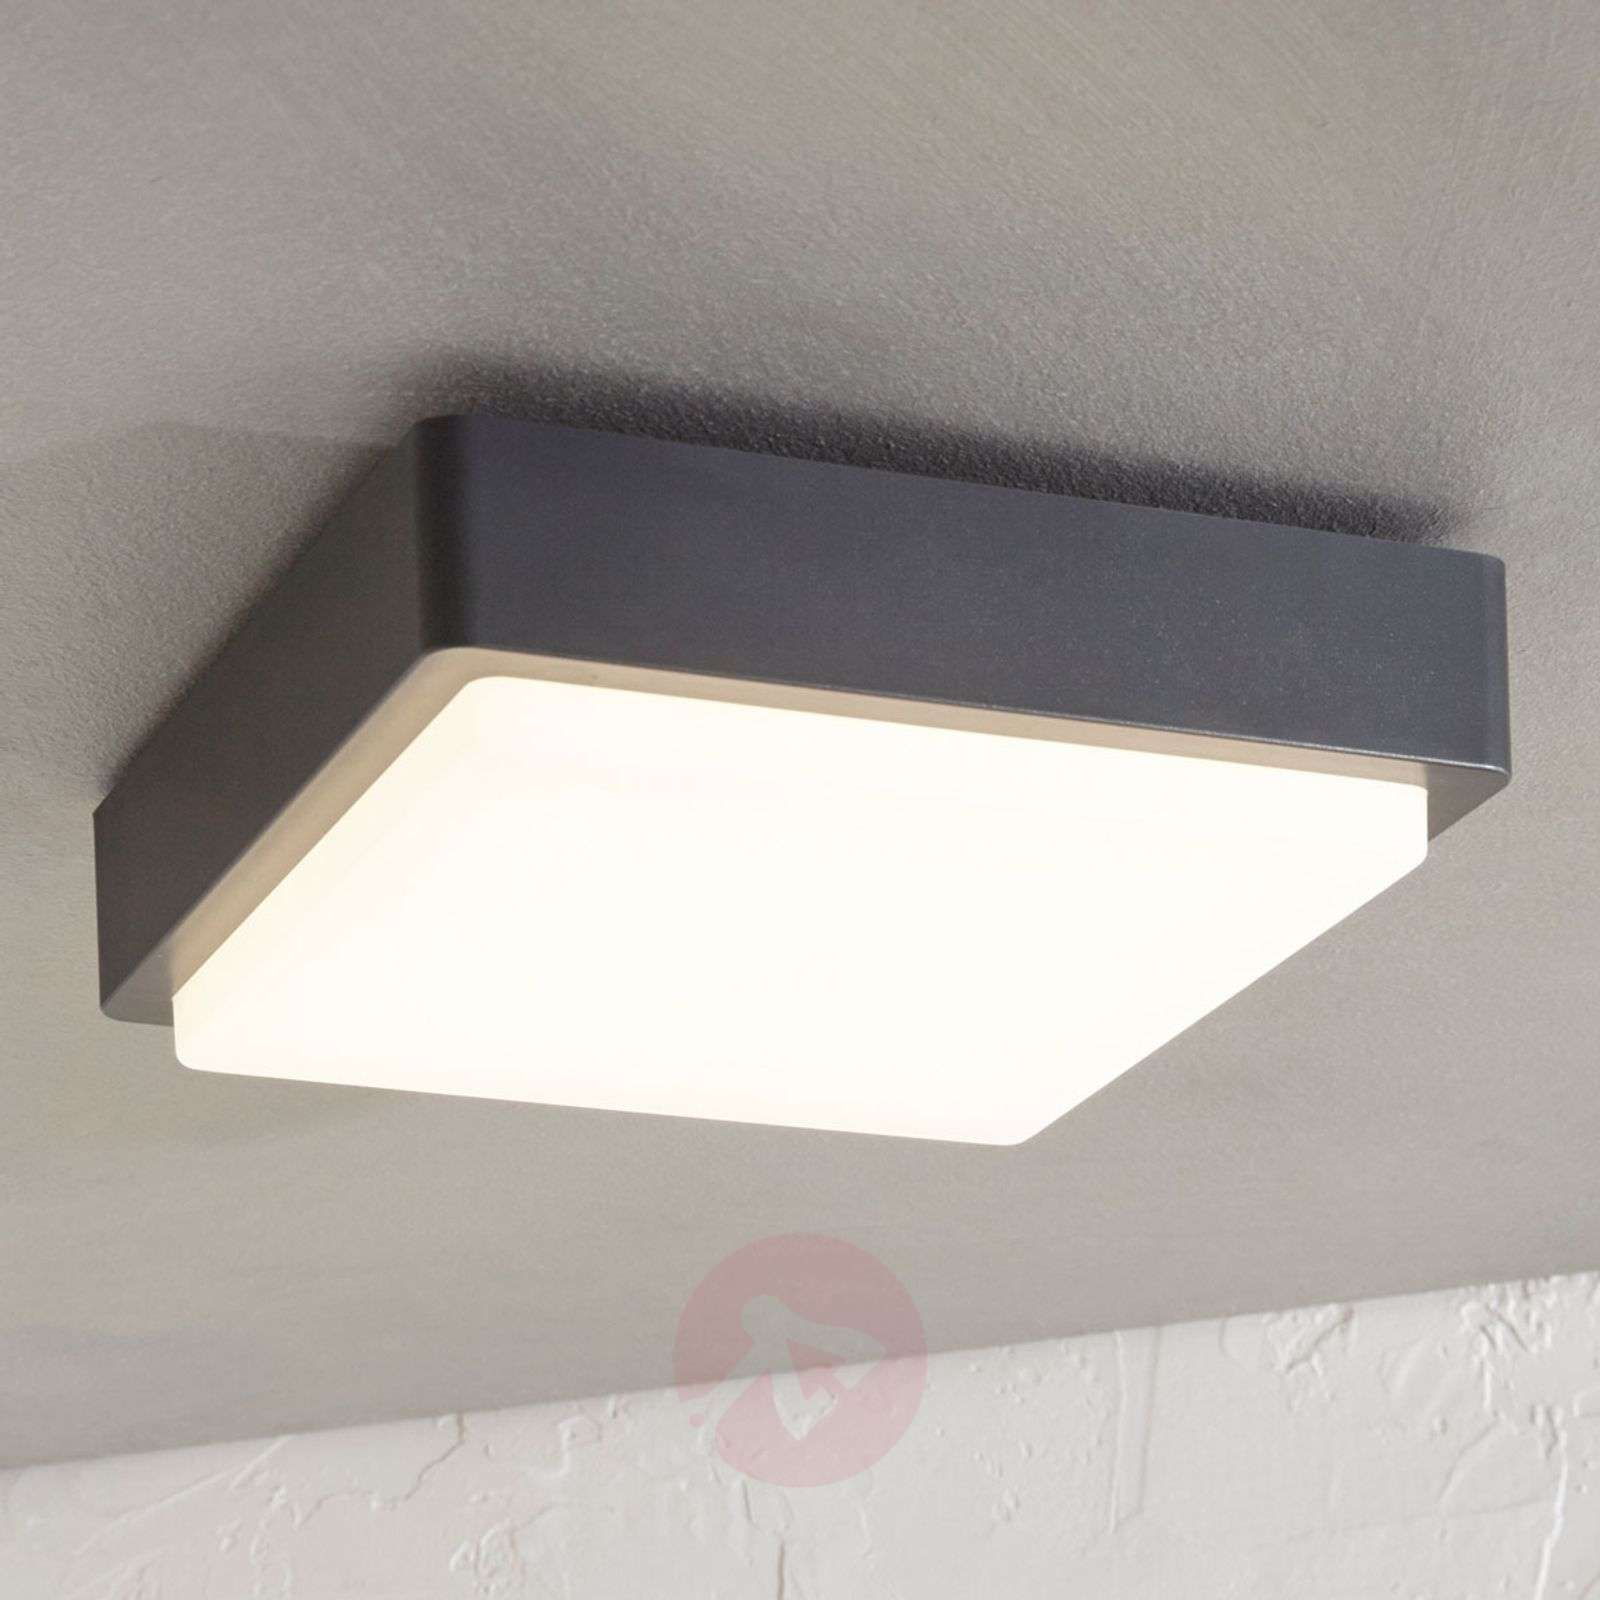 Lámpara LED de techo exterior Nermin IP65, angular-9949012-01